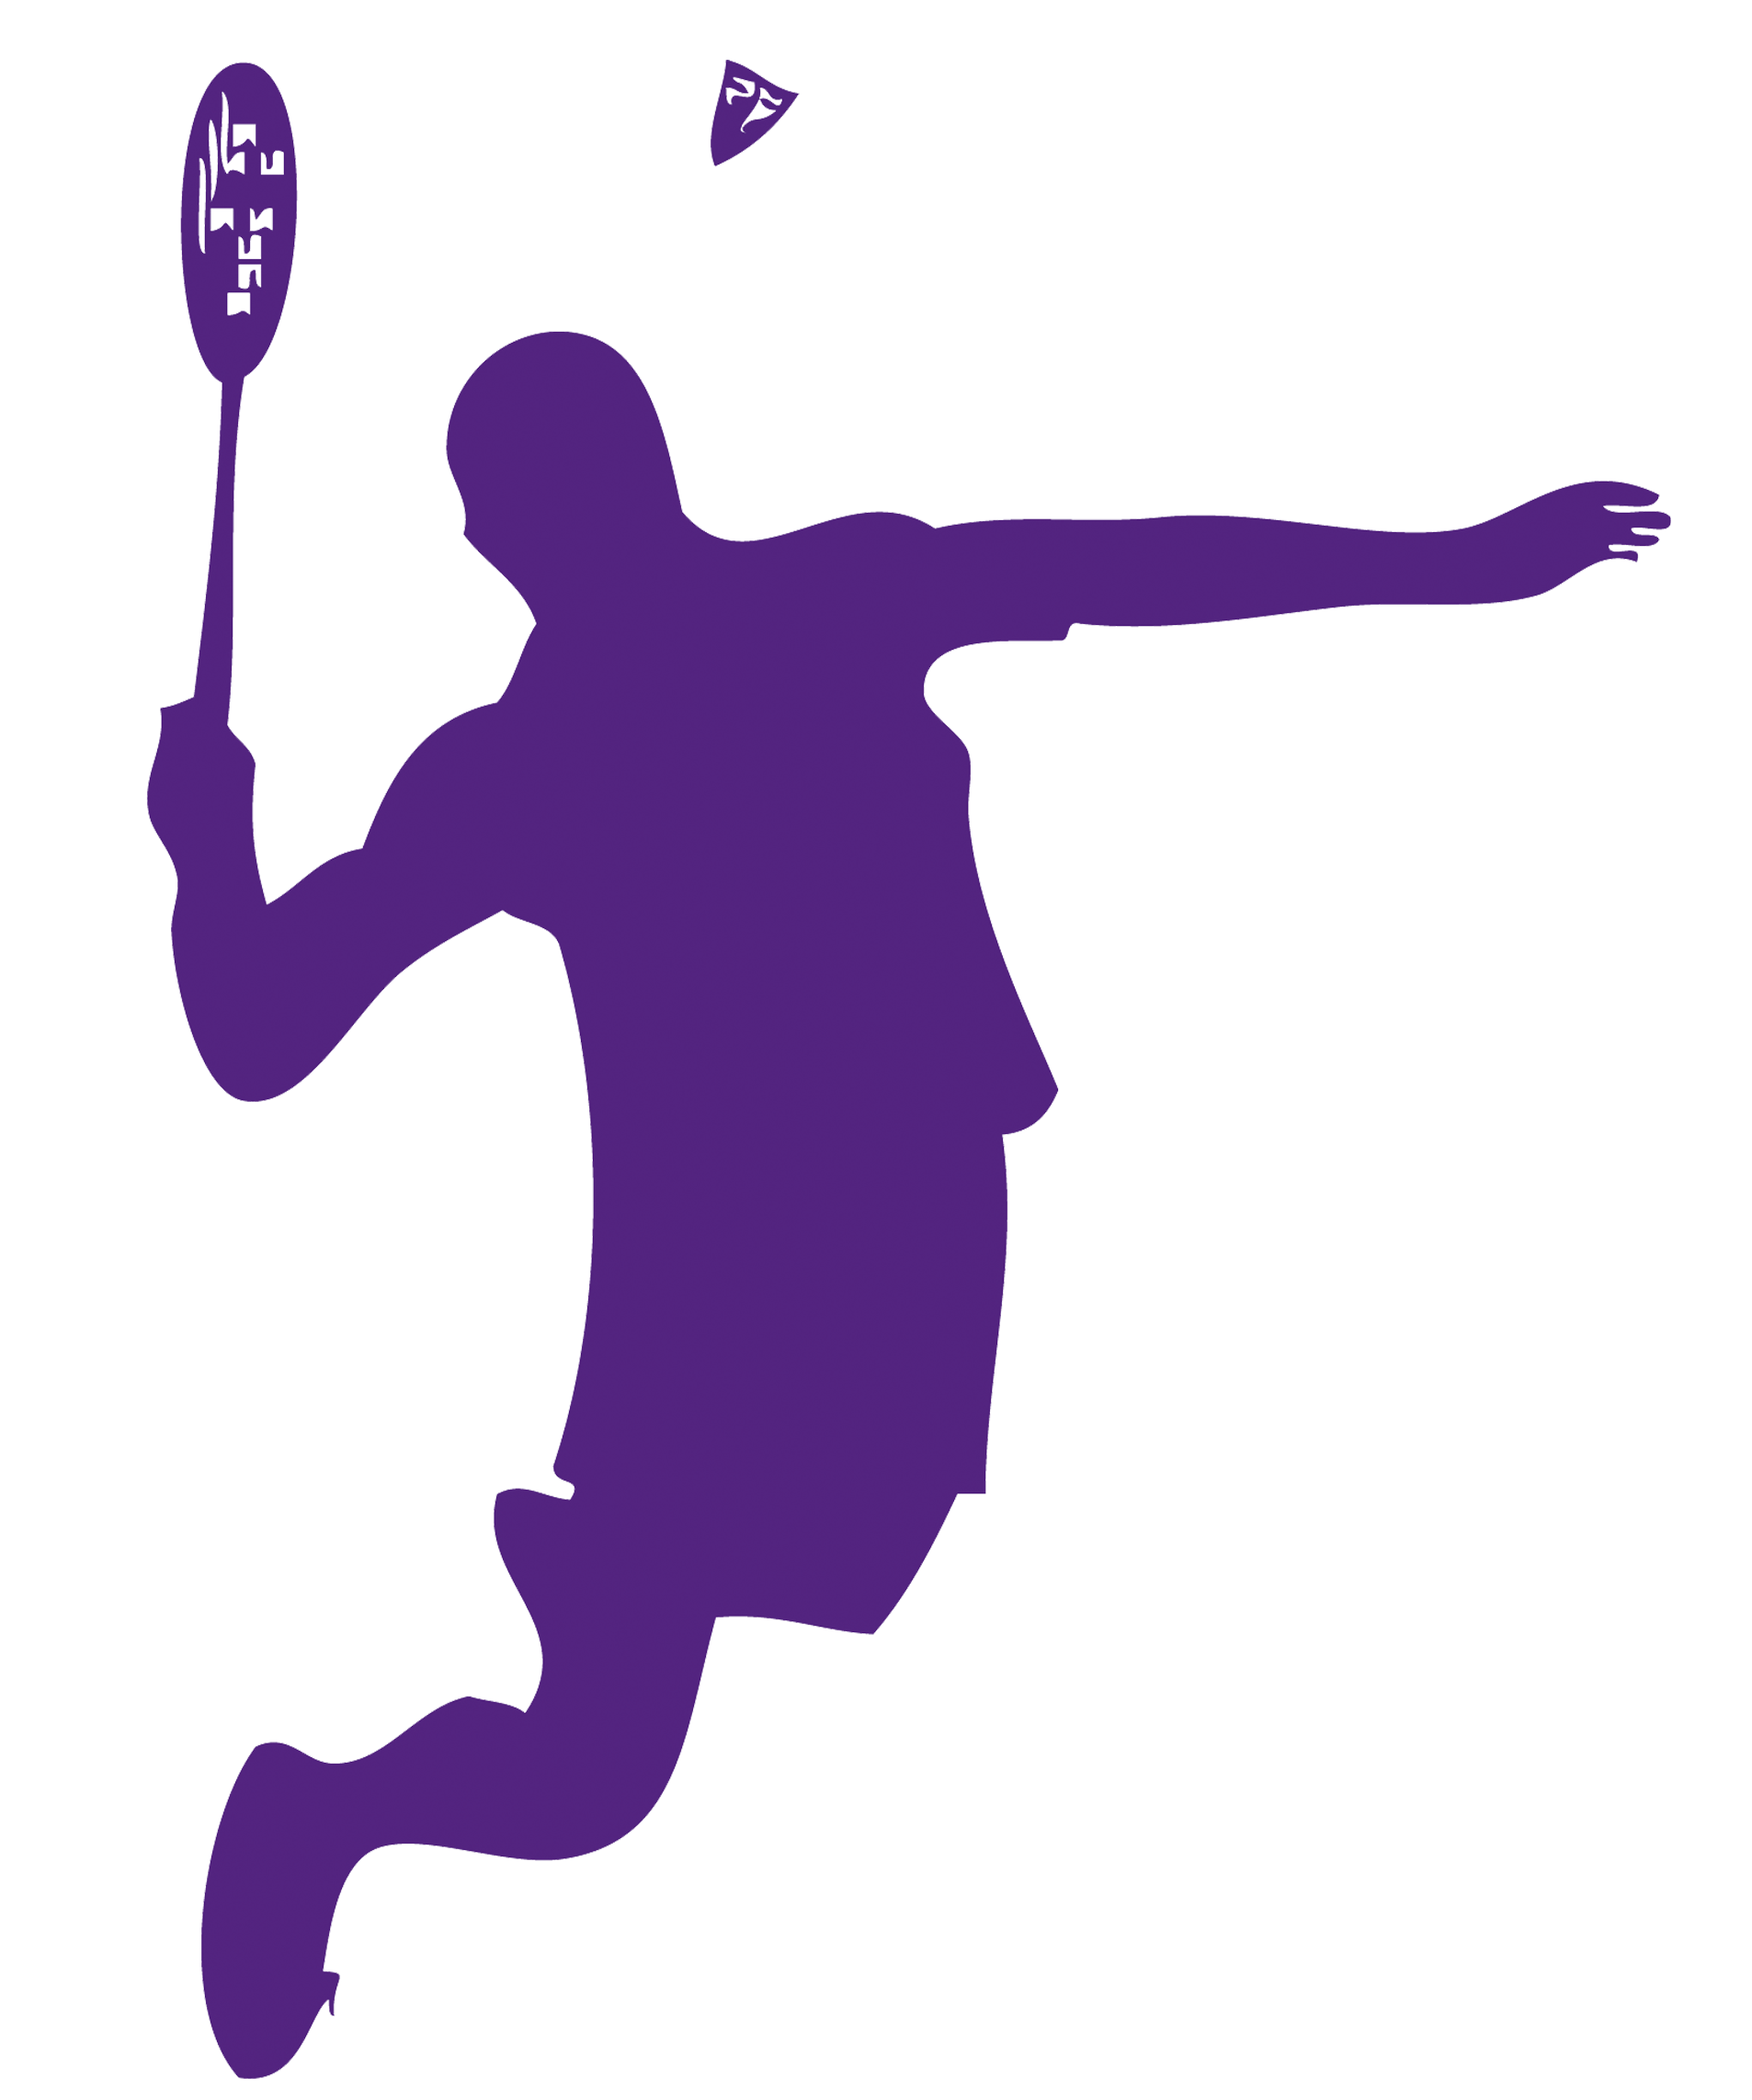 Female clipart badminton player. Png transparent images all